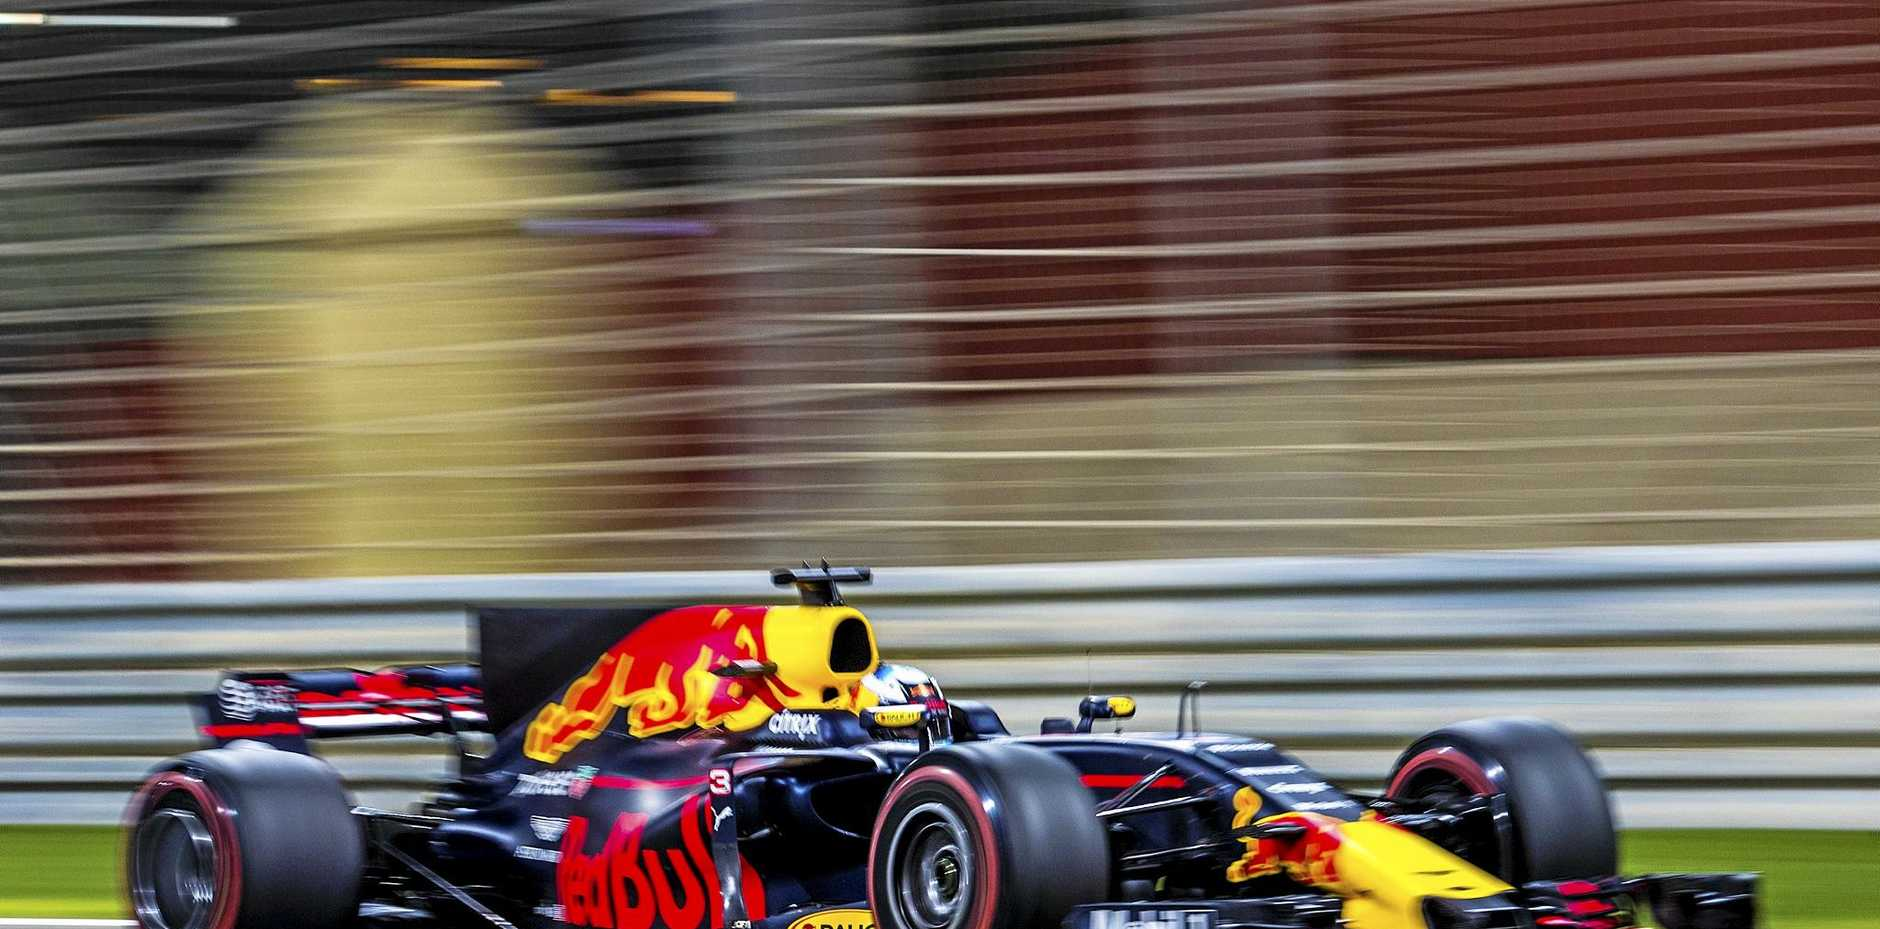 ENCOURAGED: Australian driver Daniel Ricciardo was impressed by how his Red Bull car went in the Bahrain GP.